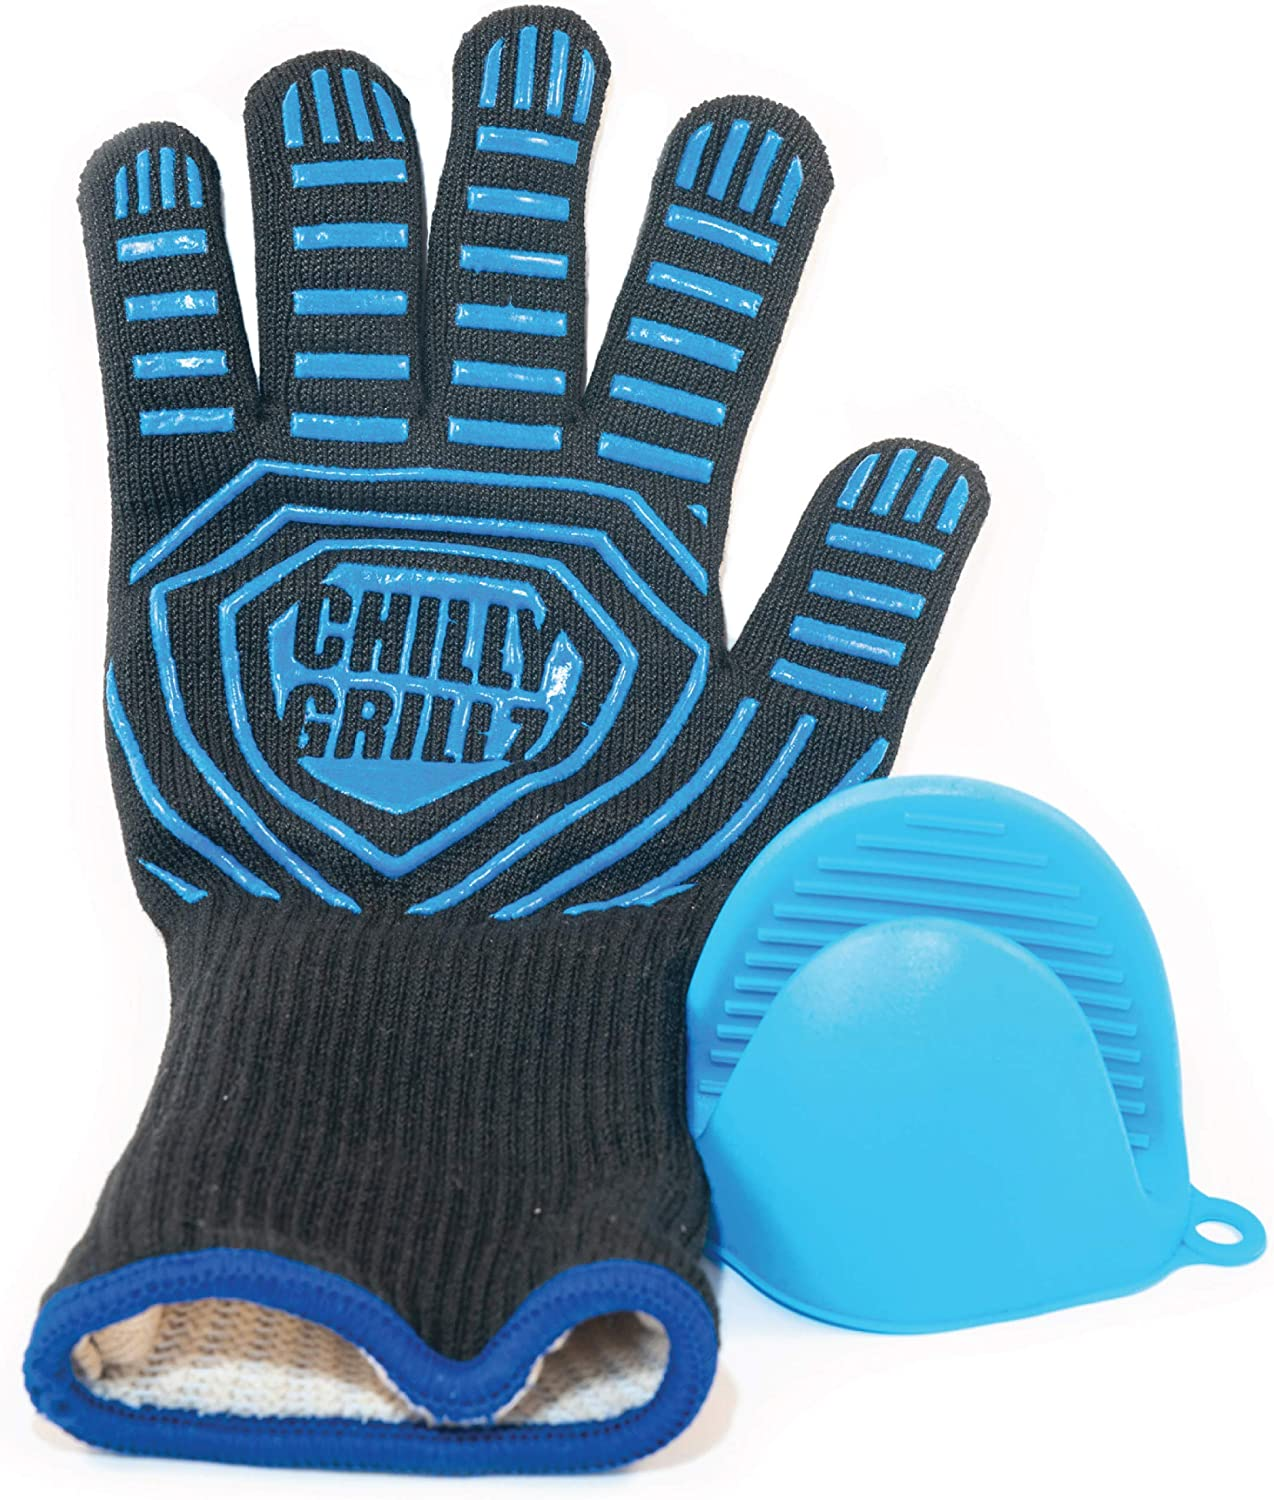 Chilly Grillz Bbq Gloves and Silicone Oven Mitt, Medium Size Heat Resistant Gloves Cooking Gloves Grill Gloves Heat Proof, Unisex Grilling Gloves: Kitchen & Dining